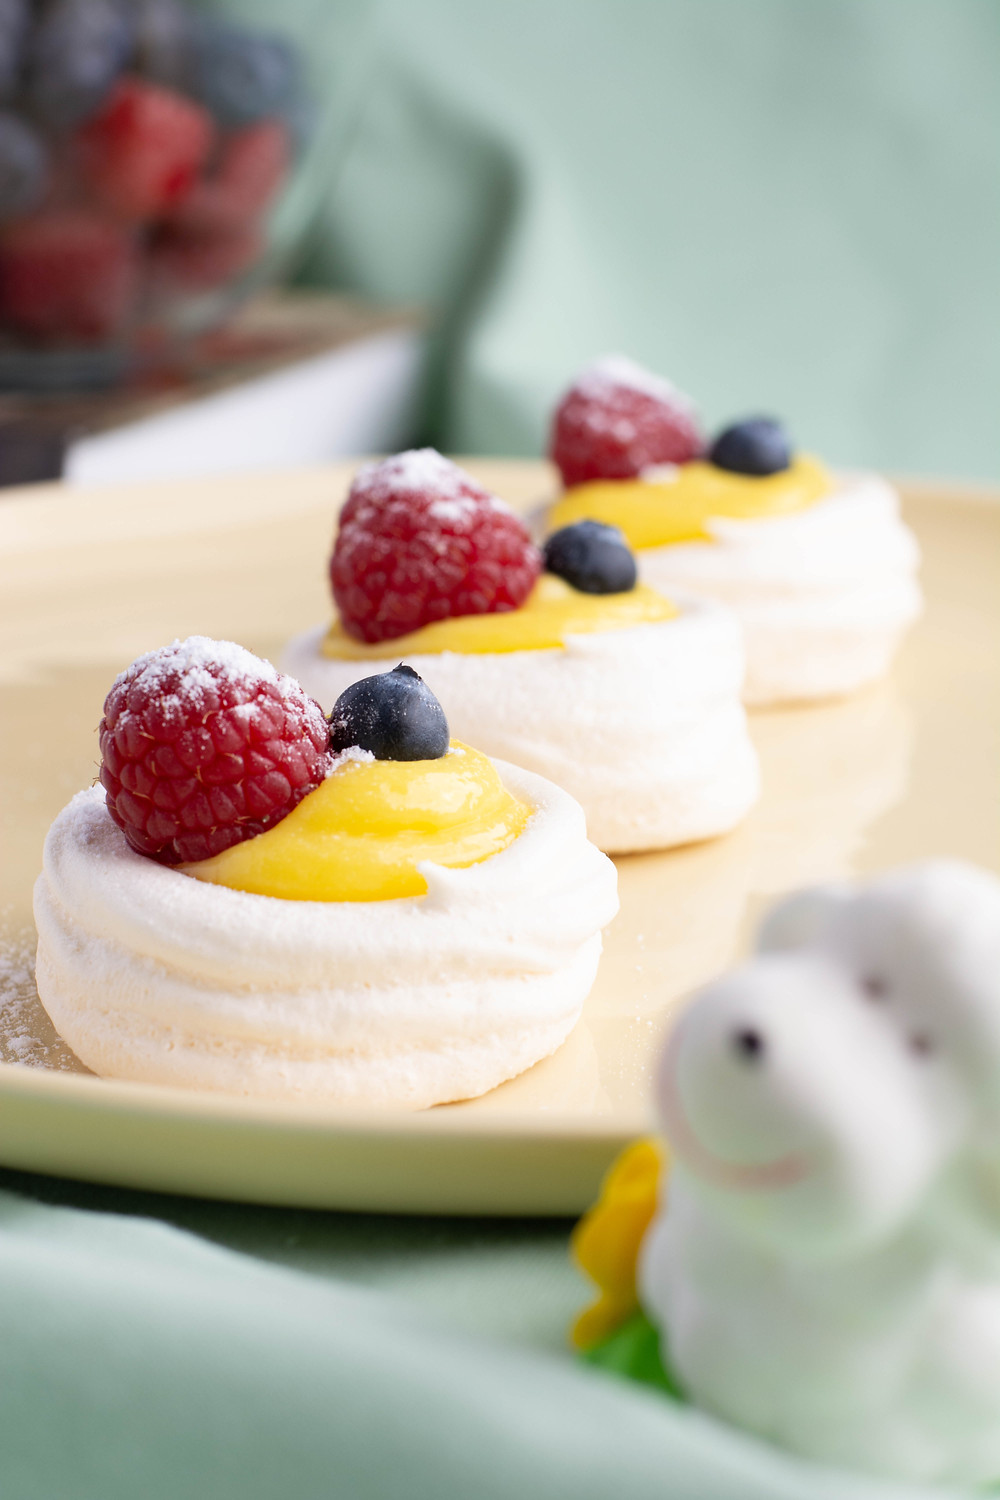 Meringue Nests with Lemon Curd and Berries on the plate